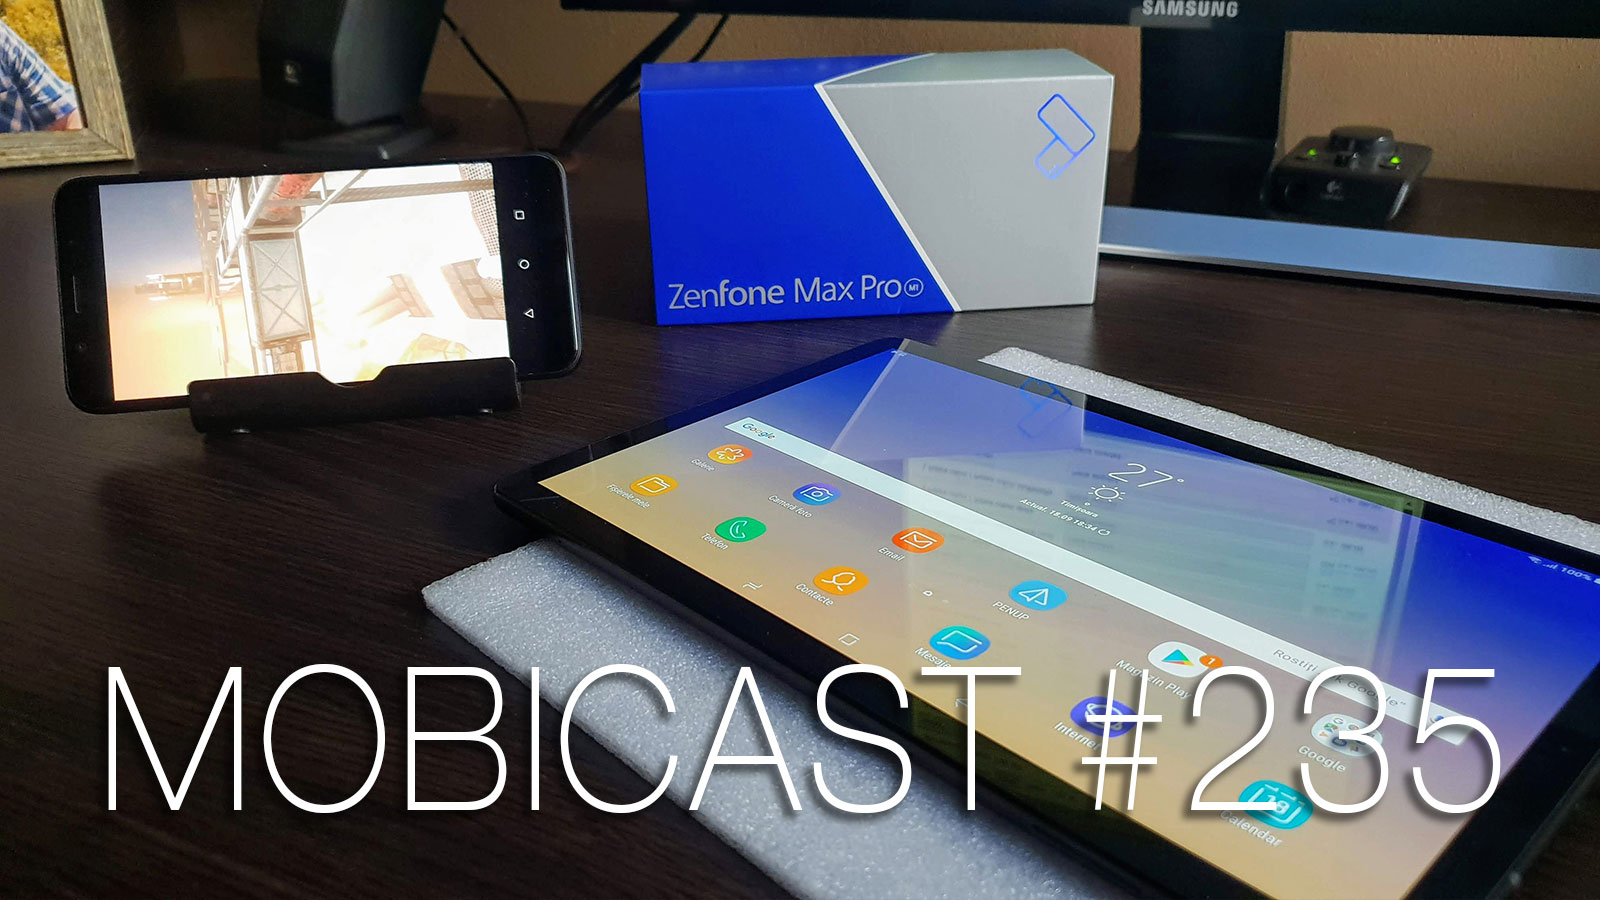 Mobicast 235: Podcast/Videocast despre lansare iPhone Xs, Apple Watch Series 4, hands on Huawei Mate 20 Lite, FIFA 19 Demo